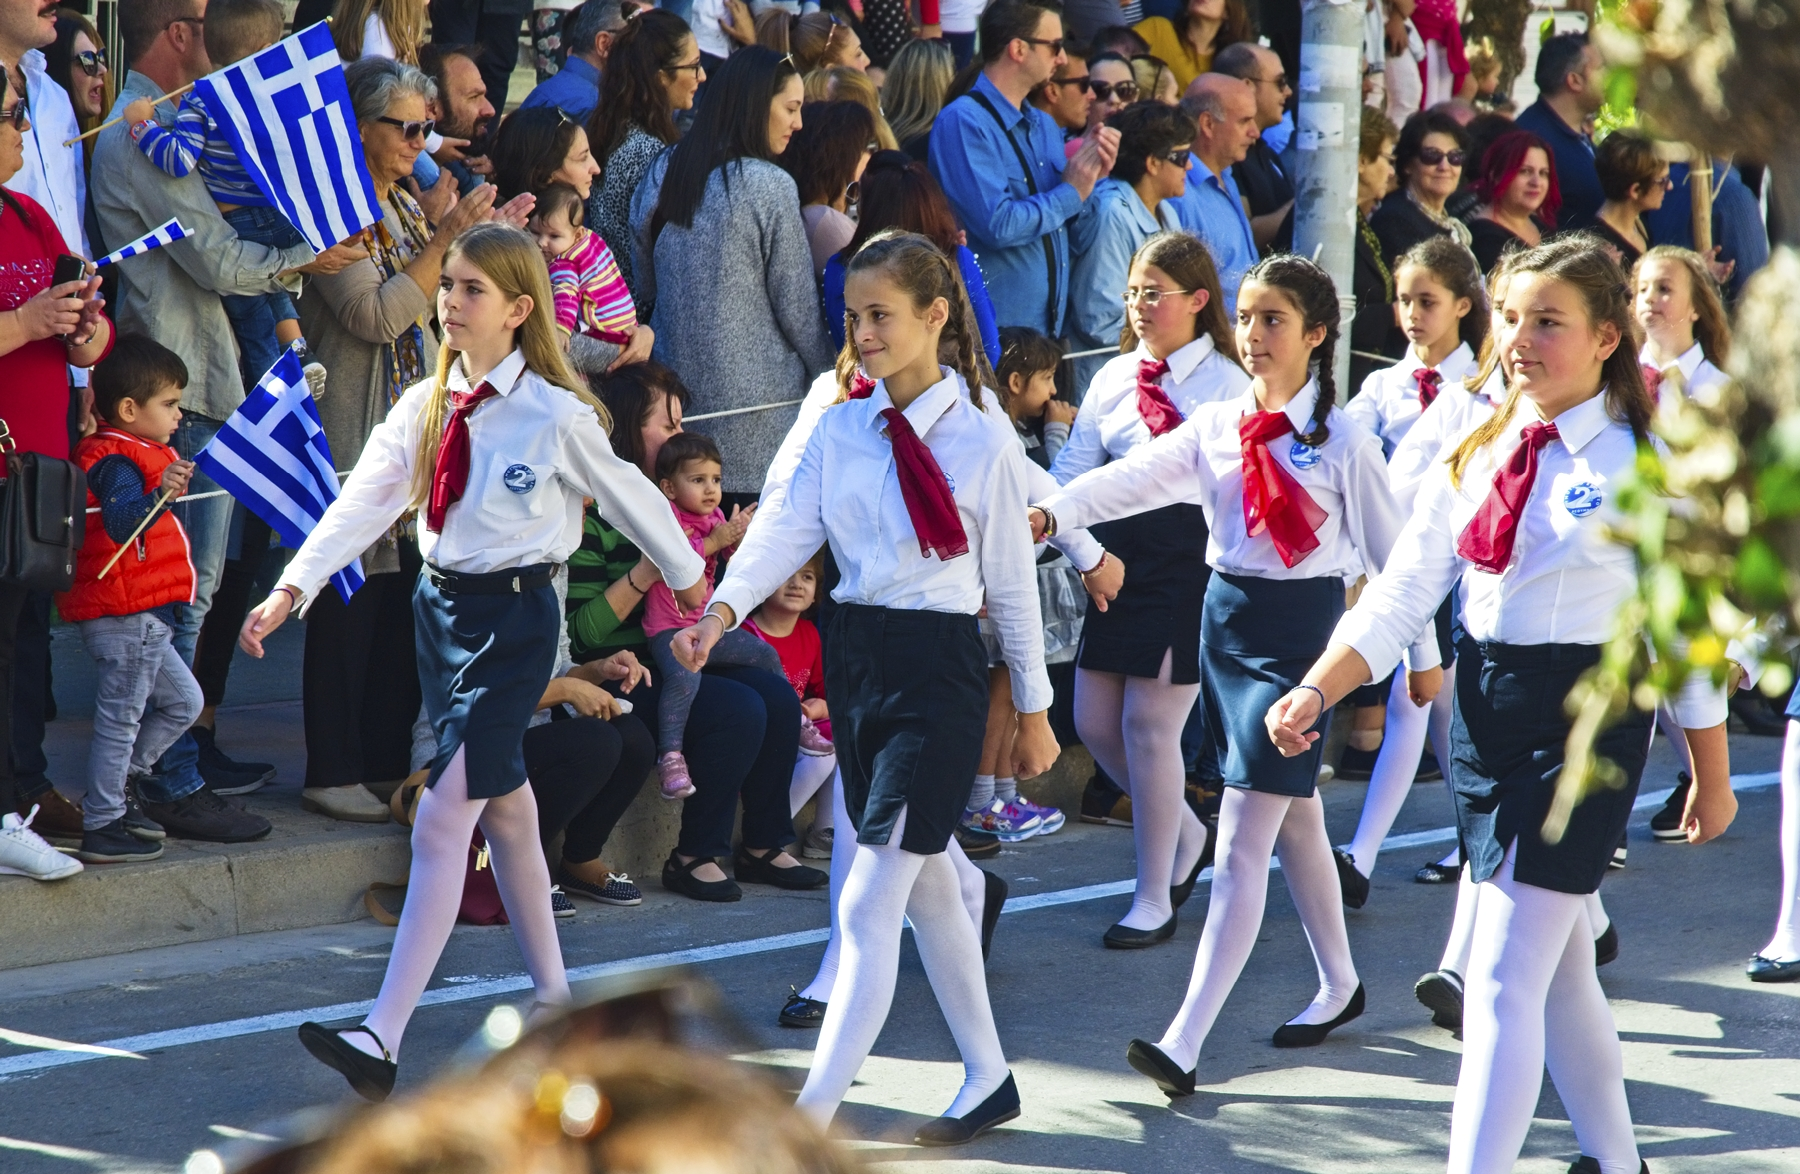 Rethymn's schools organized a marvelous parade of Cretan children